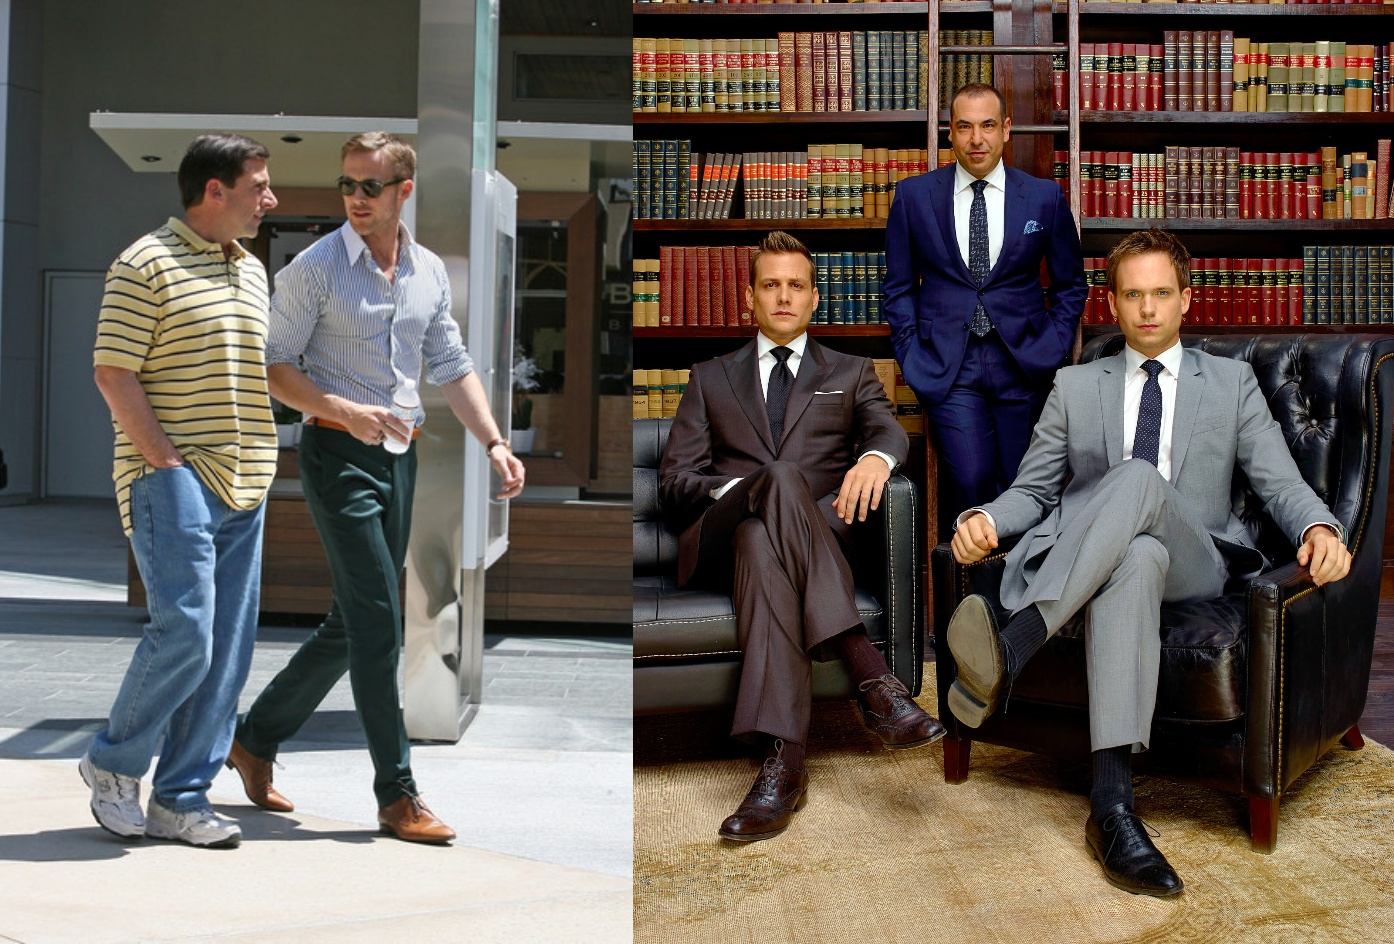 The movies that give me inspiration about SUITS the most